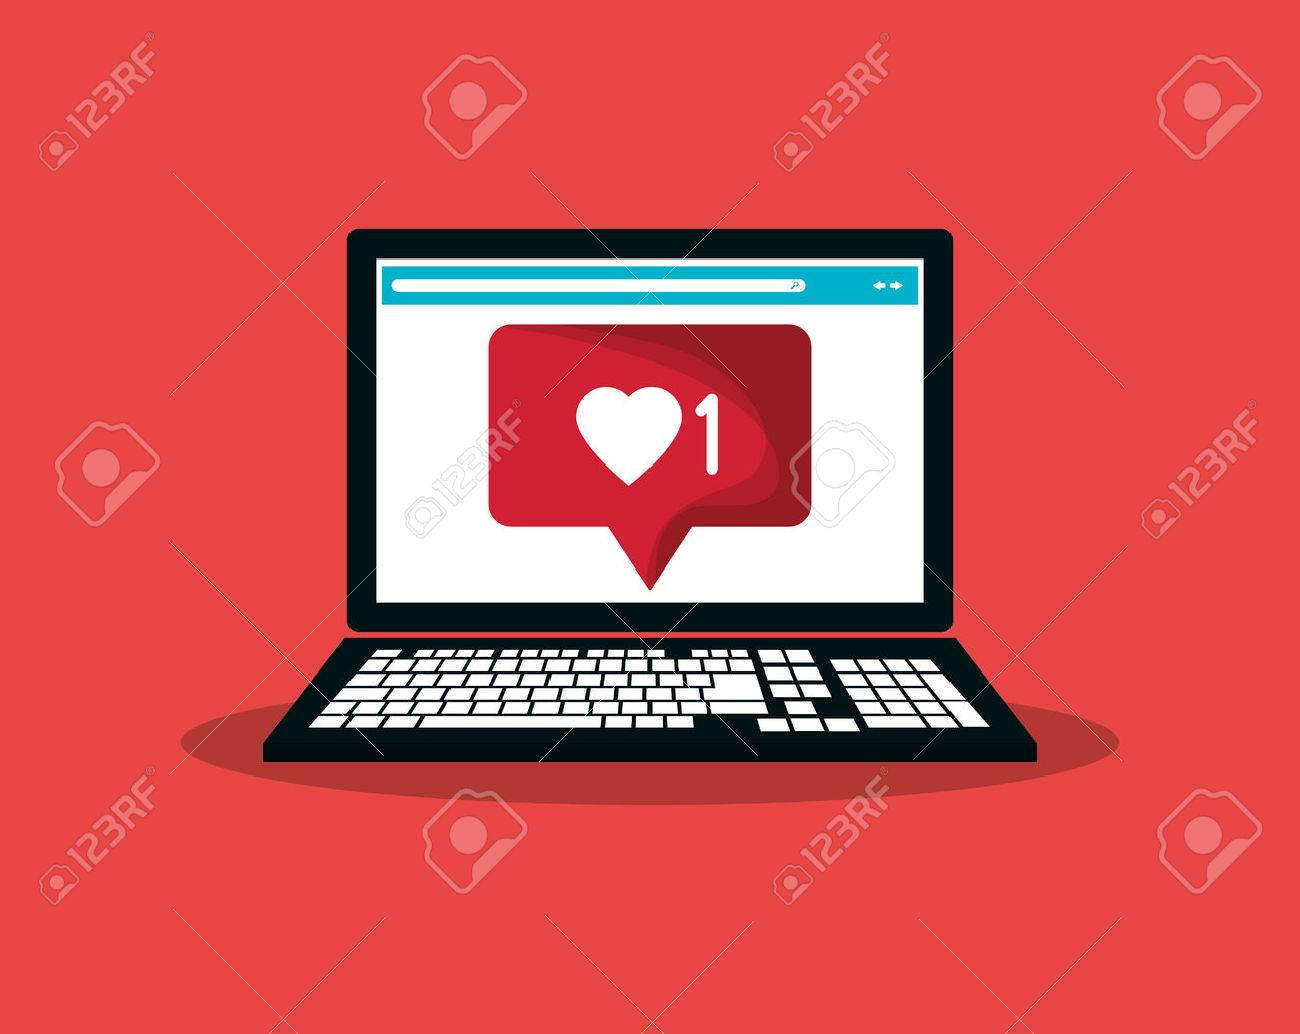 notification icon in communication related image vector illustration design - 64670233